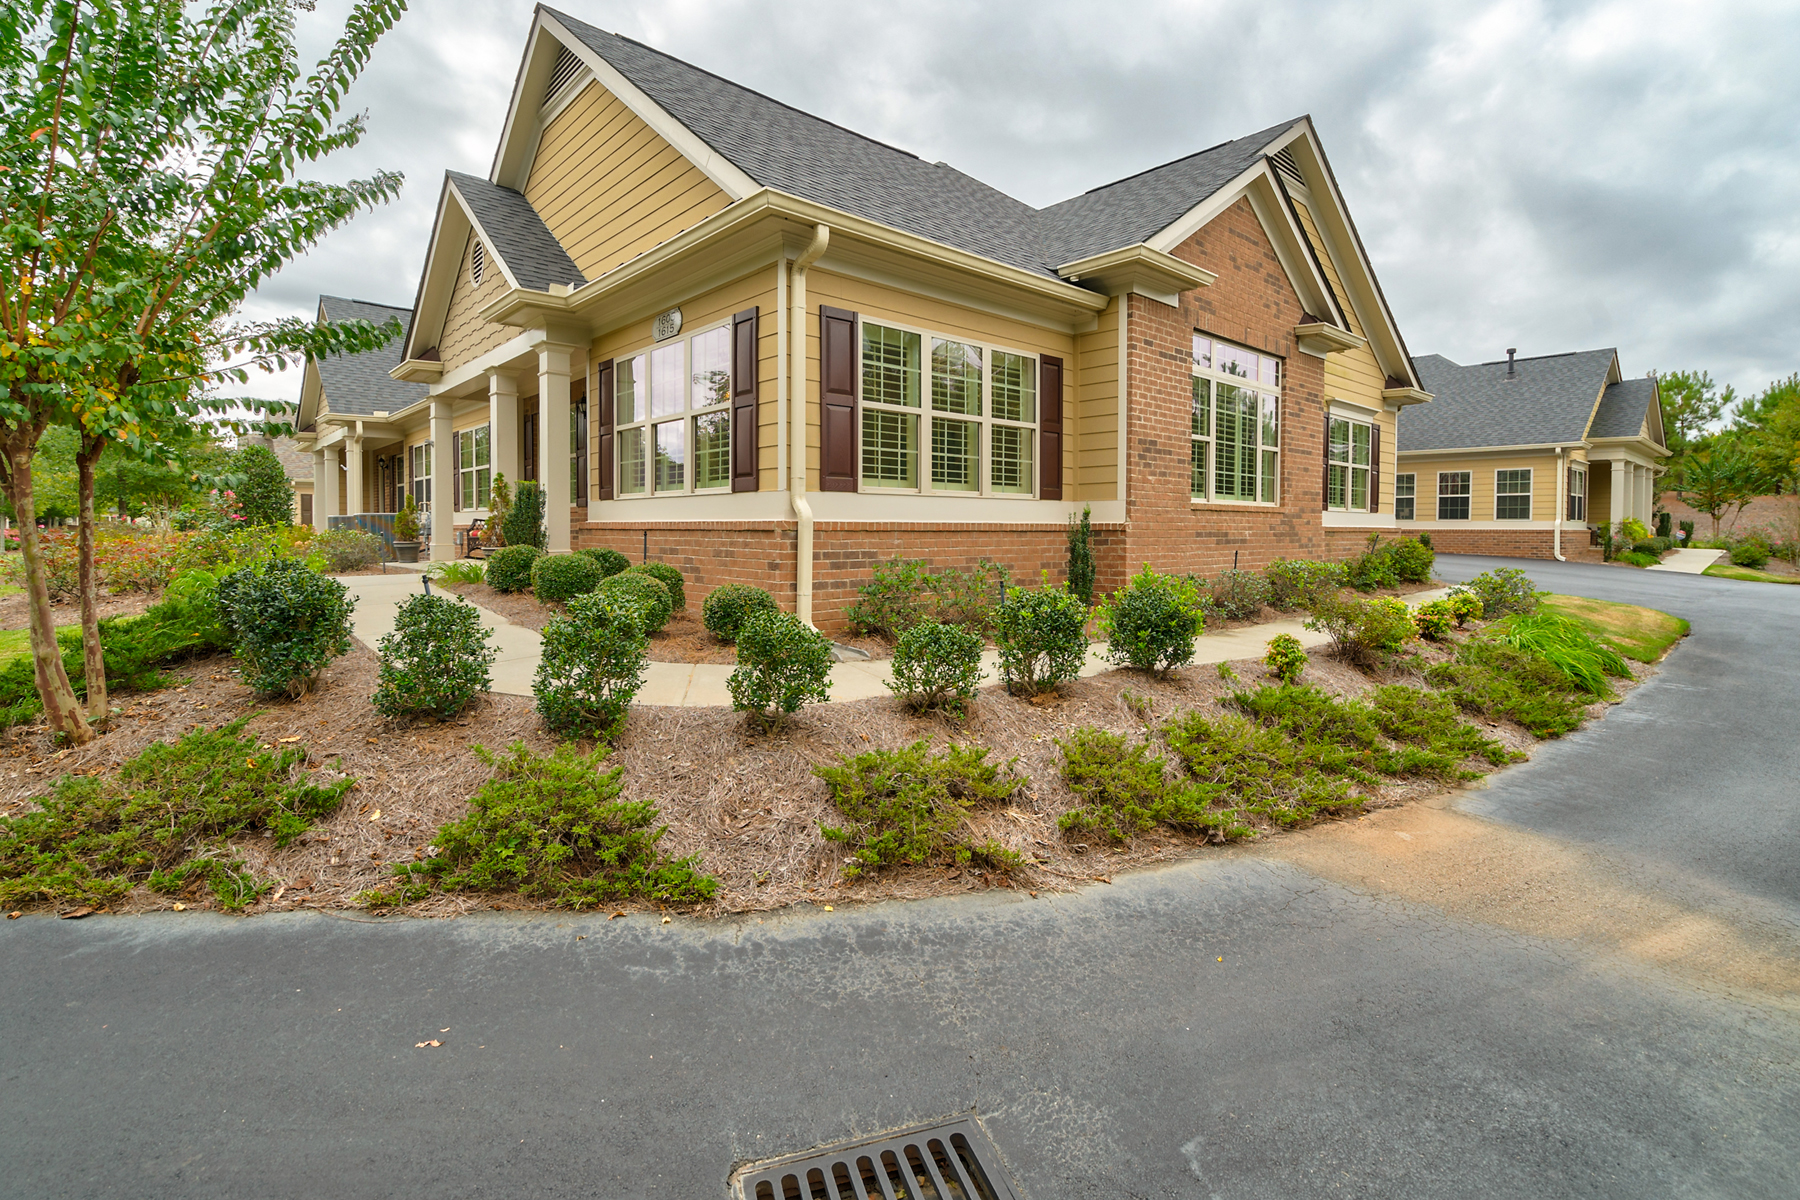 Additional photo for property listing at Exceptionally Designed, Maintenance-Free Active Adult 55+ Living in S. Forsyth 1605 Oak Meadows Ln Cumming, Georgia 30041 United States